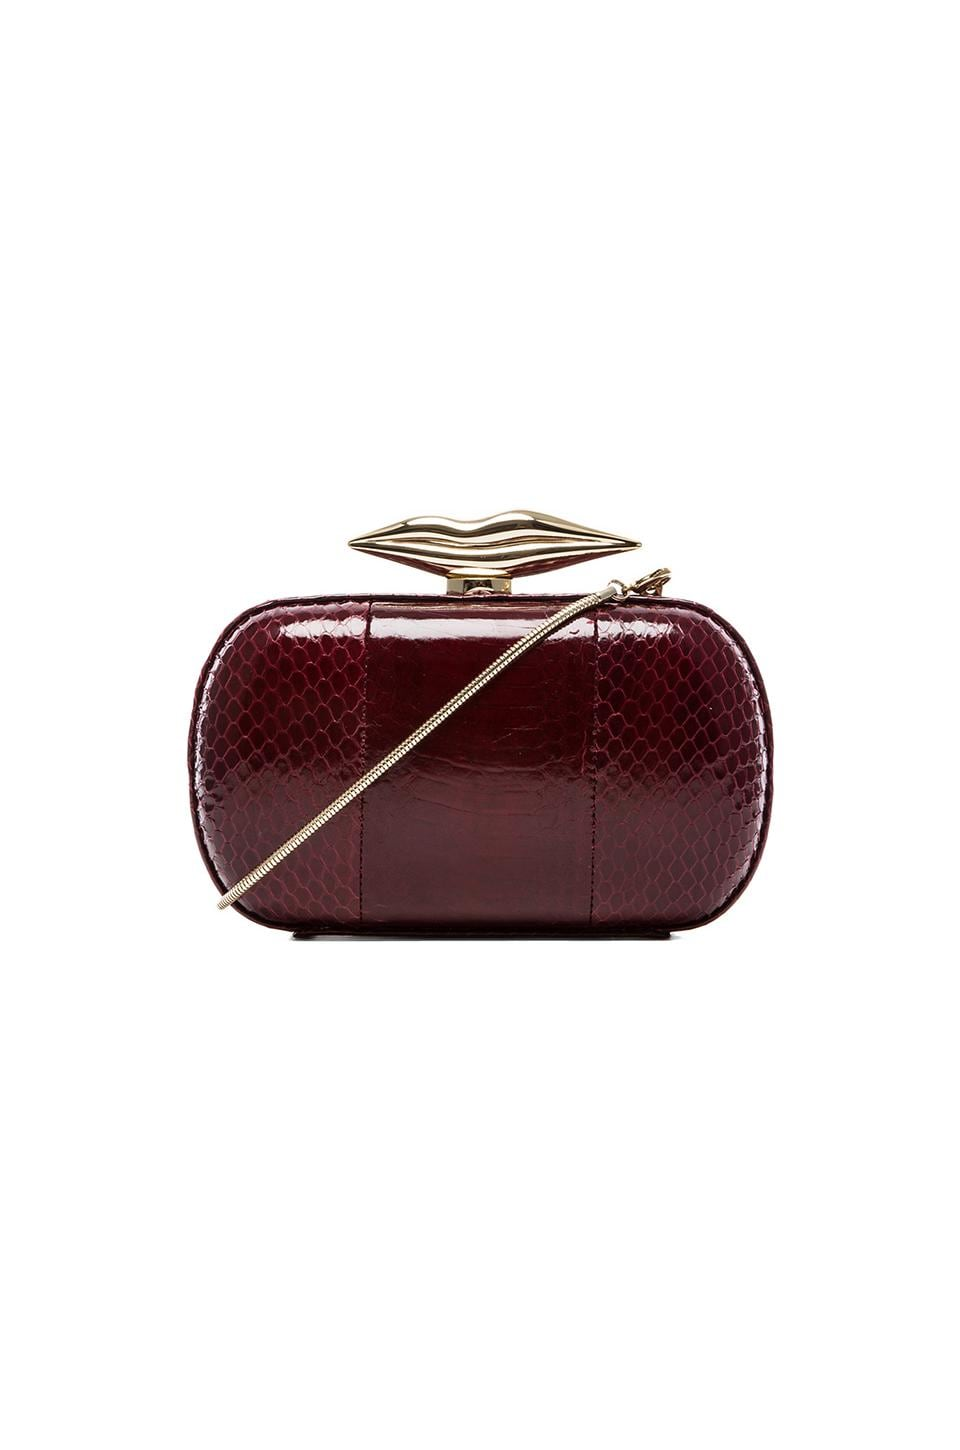 Diane von Furstenberg Flirty Minaudiere Watersnake Clutch in Deep Cherry